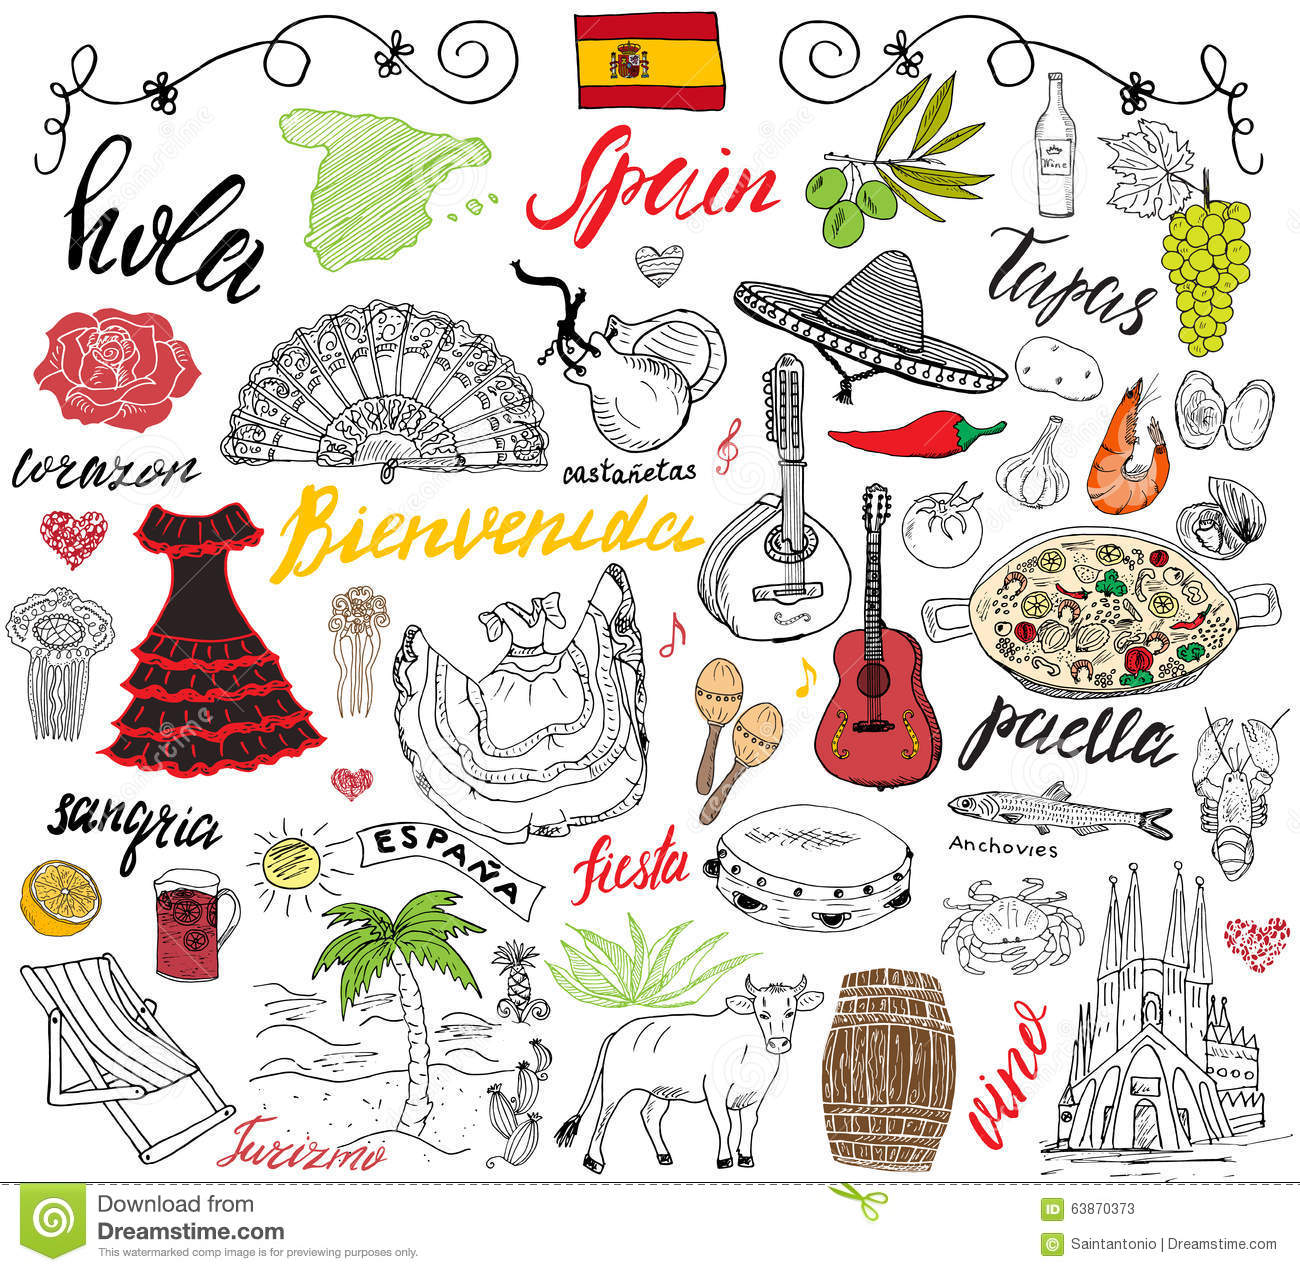 Dessin Paella spain doodles elements. hand drawn set with spanish food paella